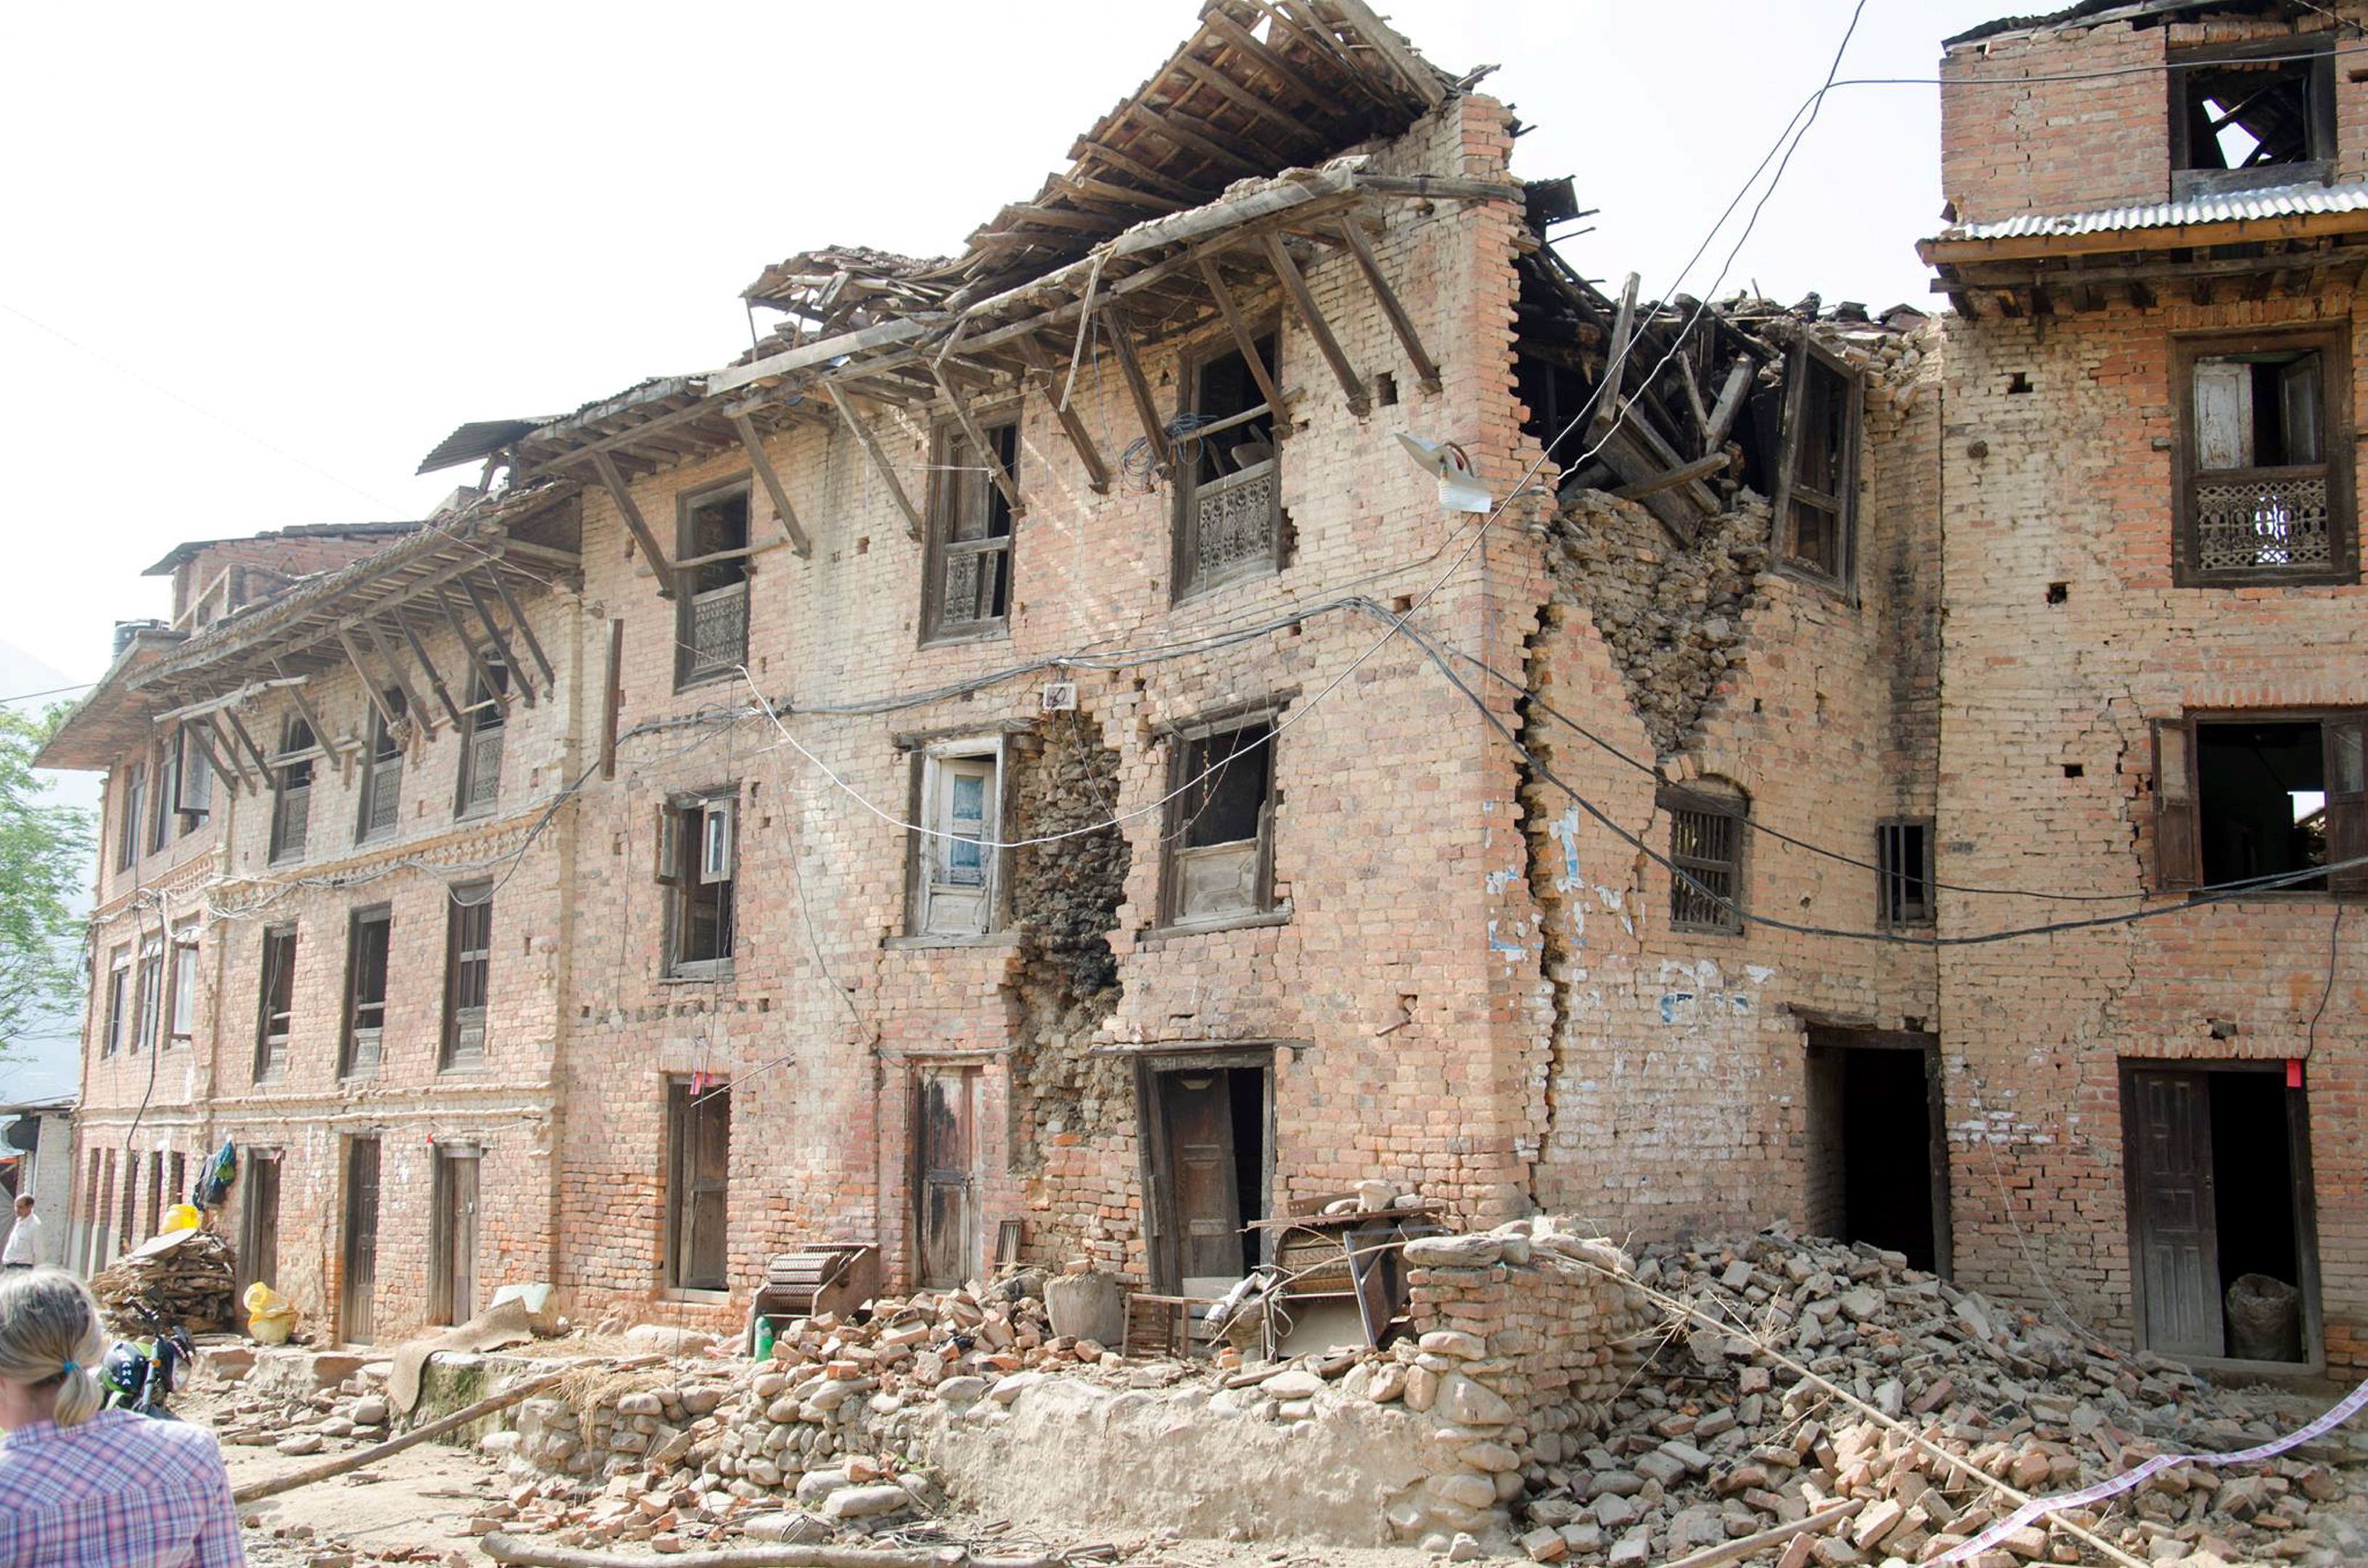 Damage caused to a building in the Nepalese disaster.